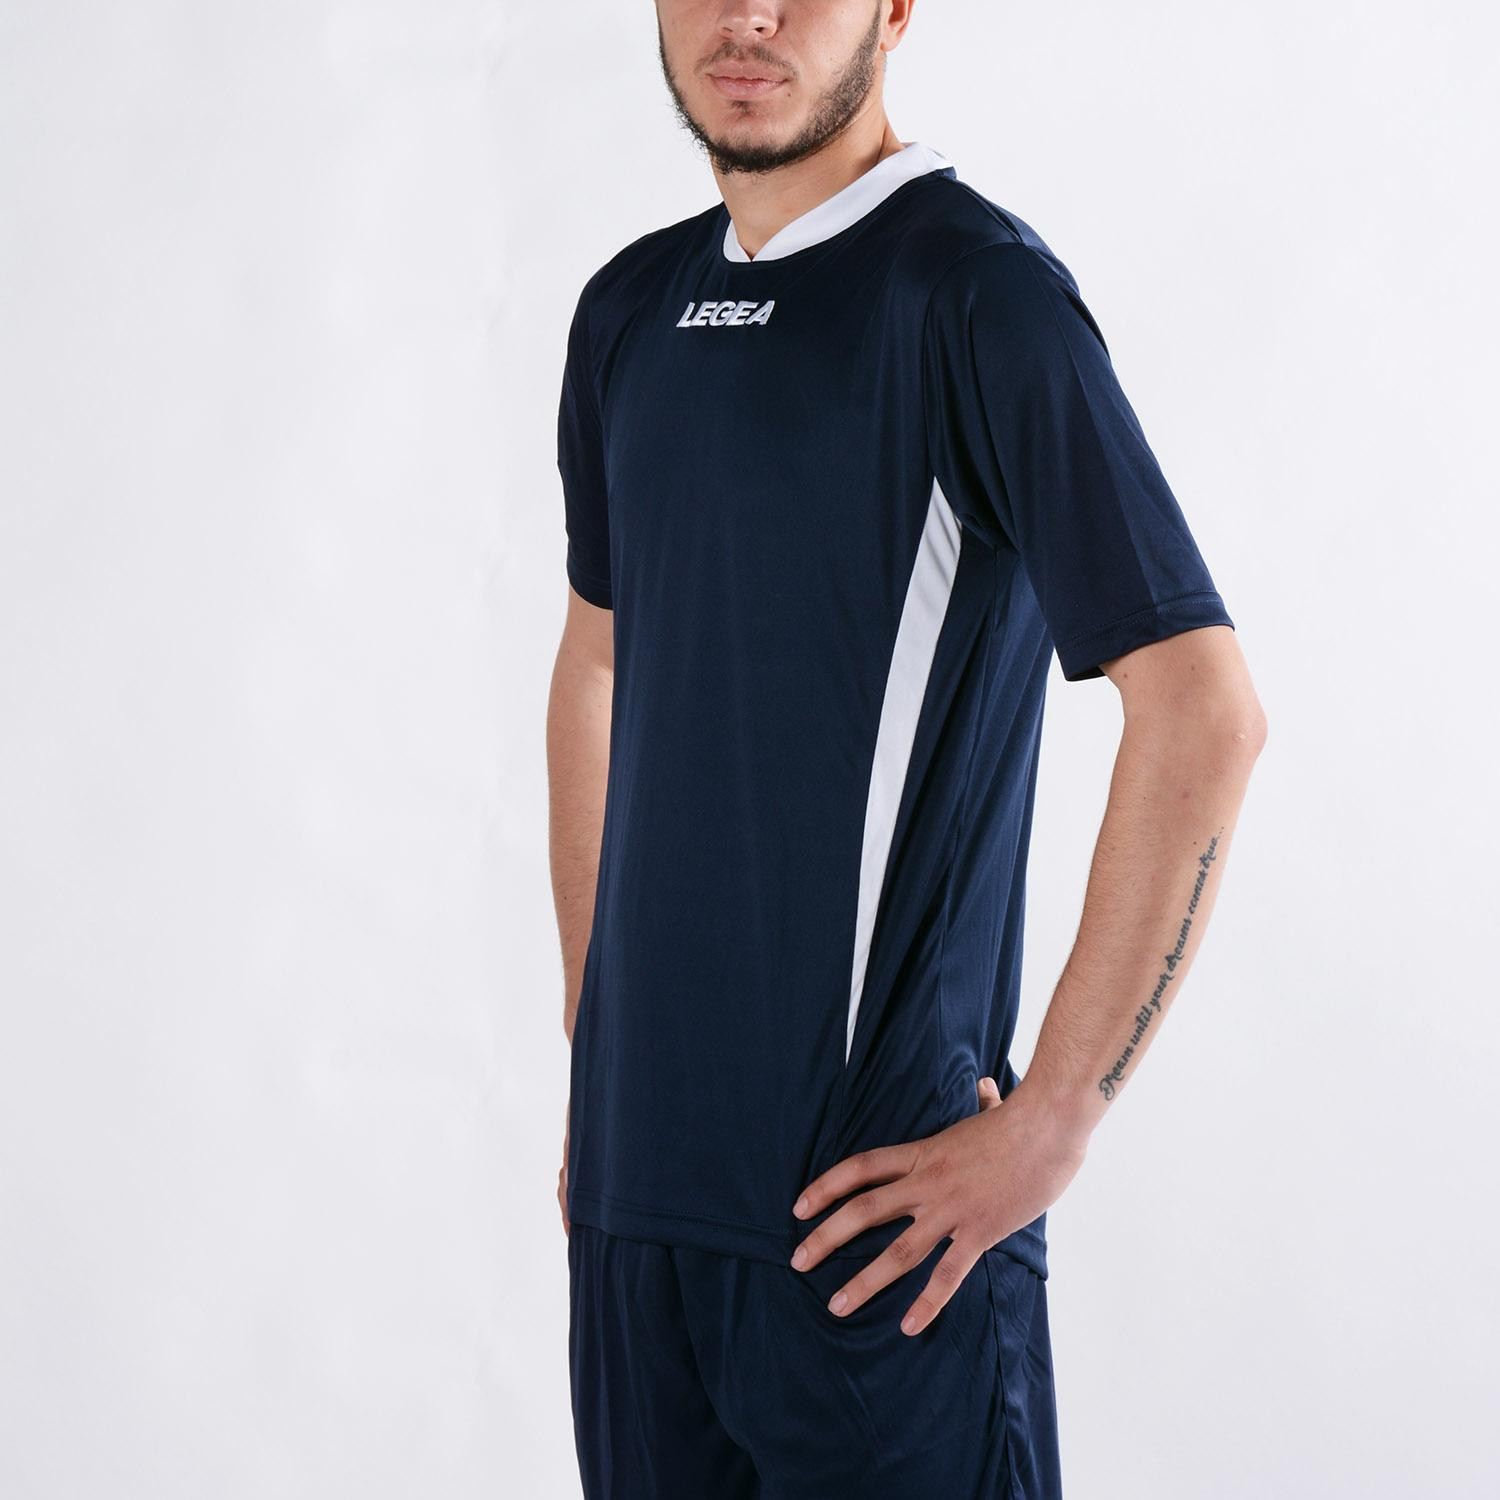 Legea Maglia Dusseldorf | Men's Football Jersey